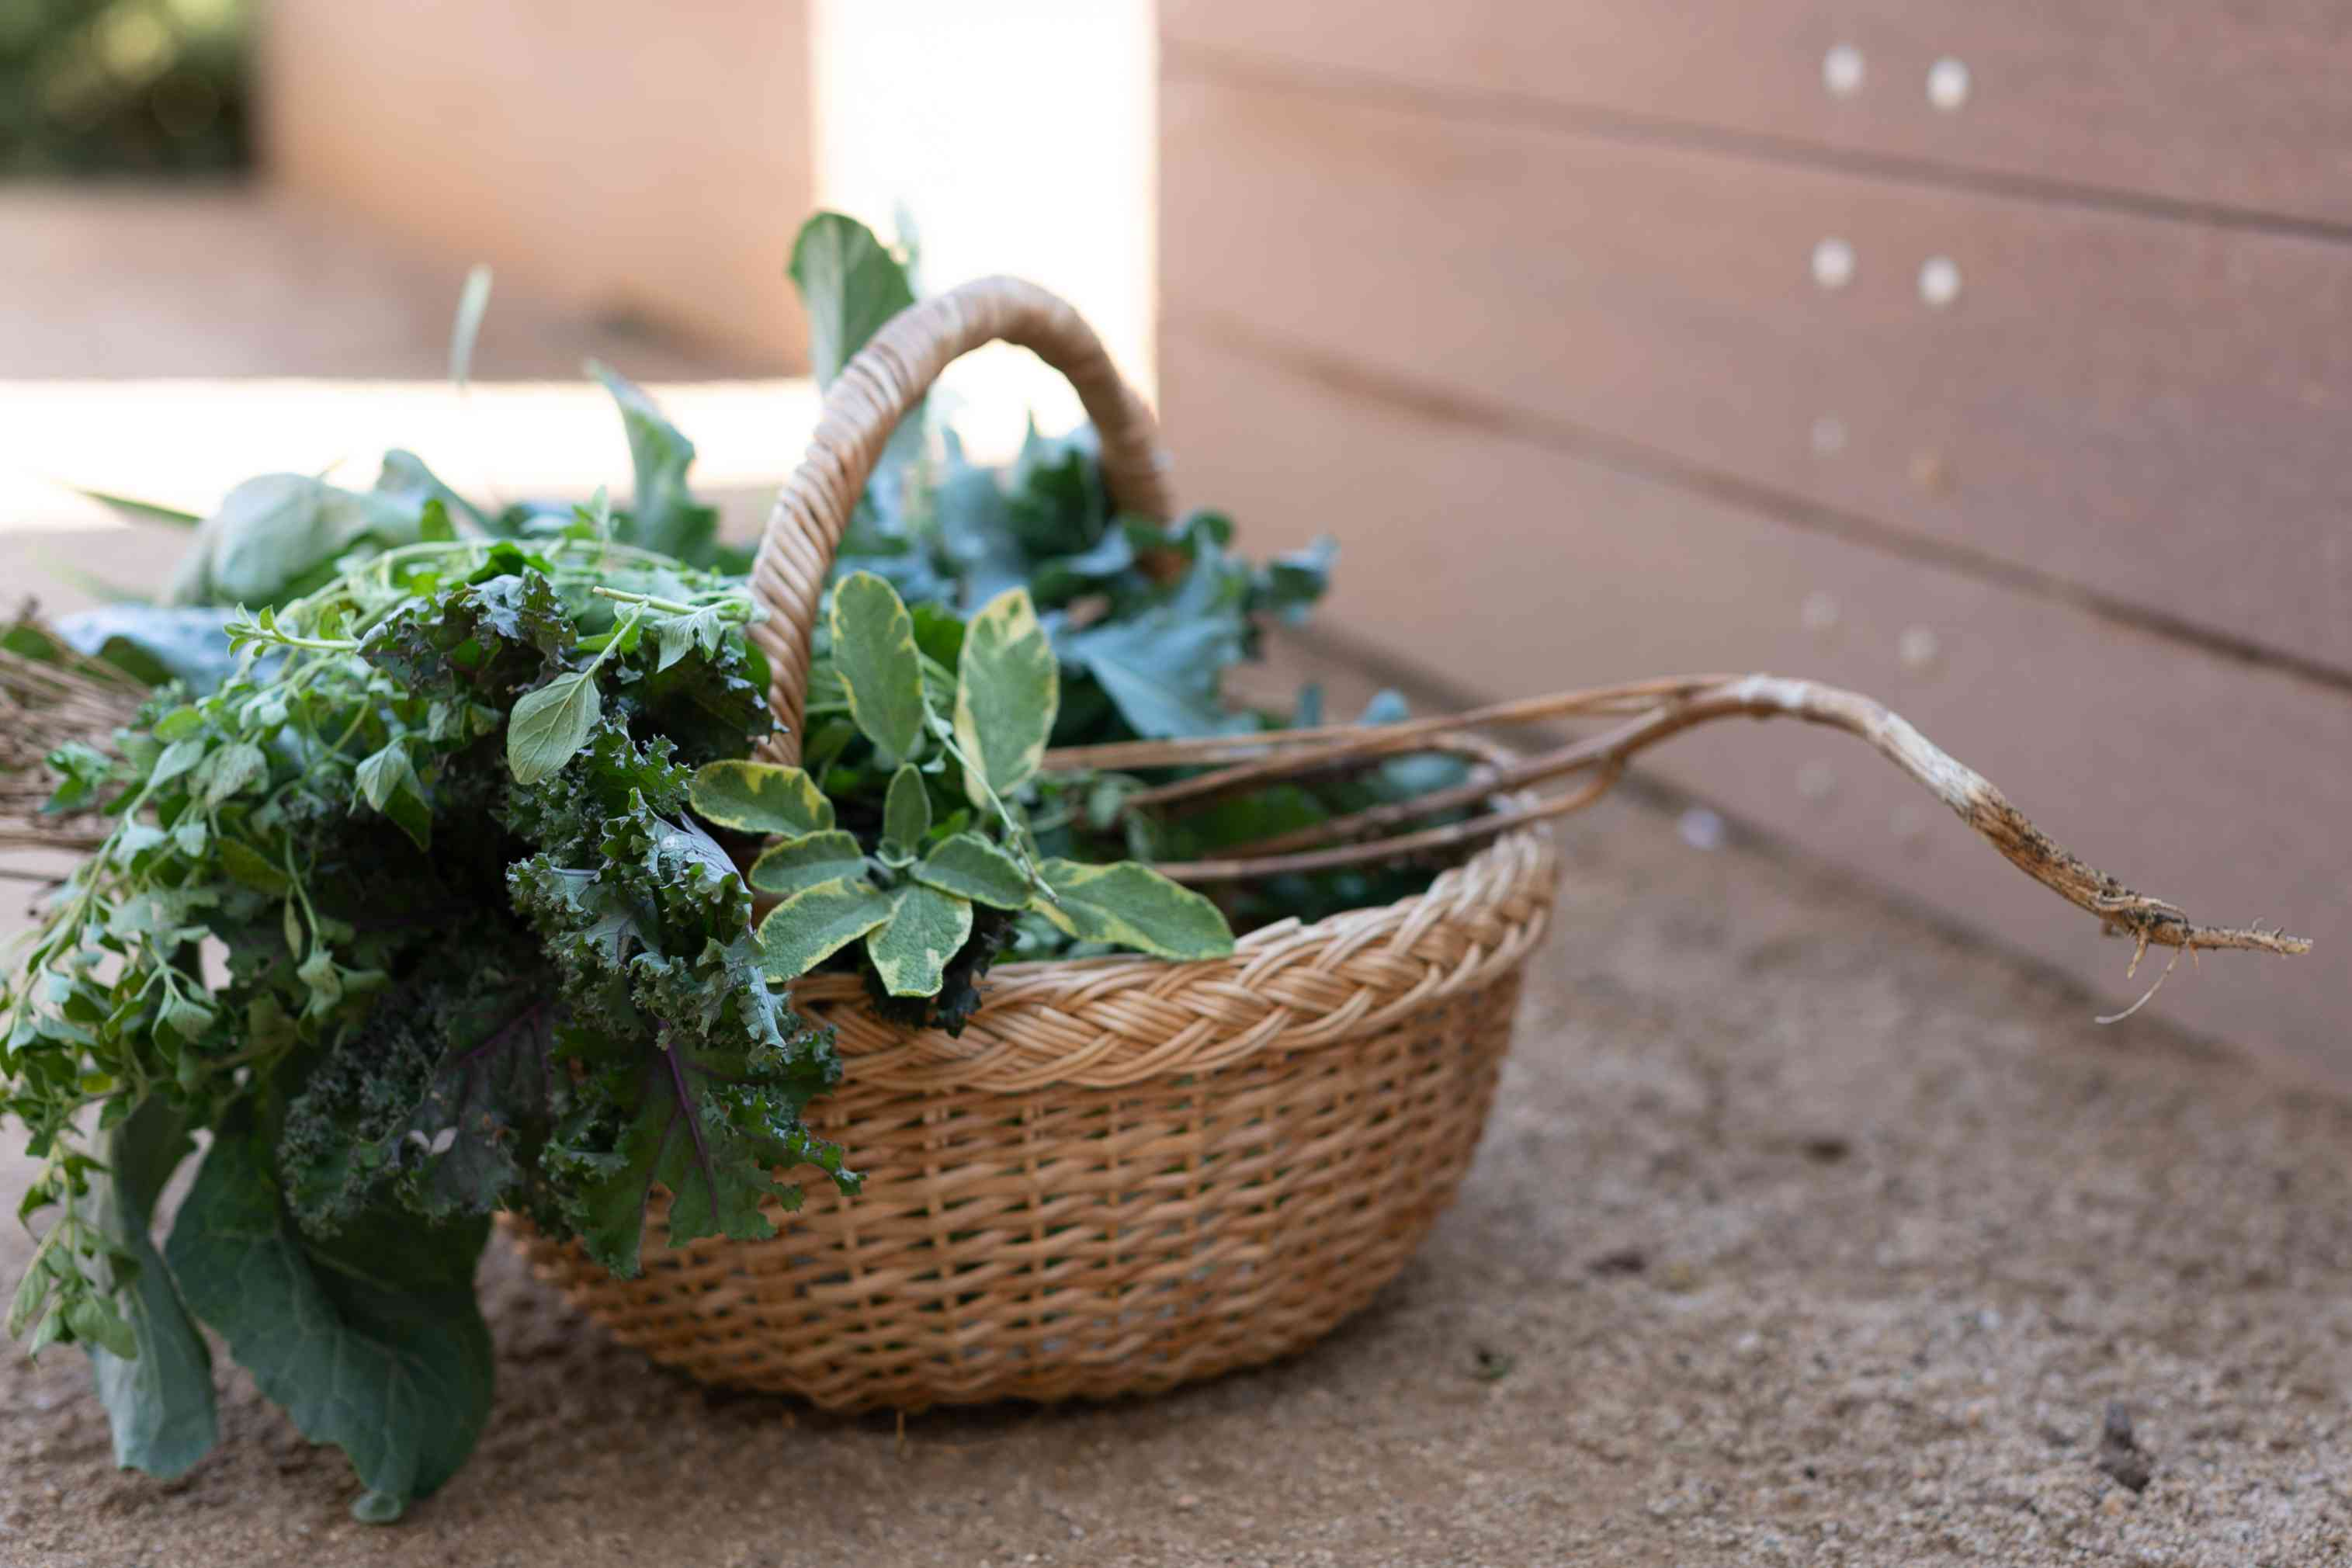 Round wicker basket with vegetable greens for harvest inside